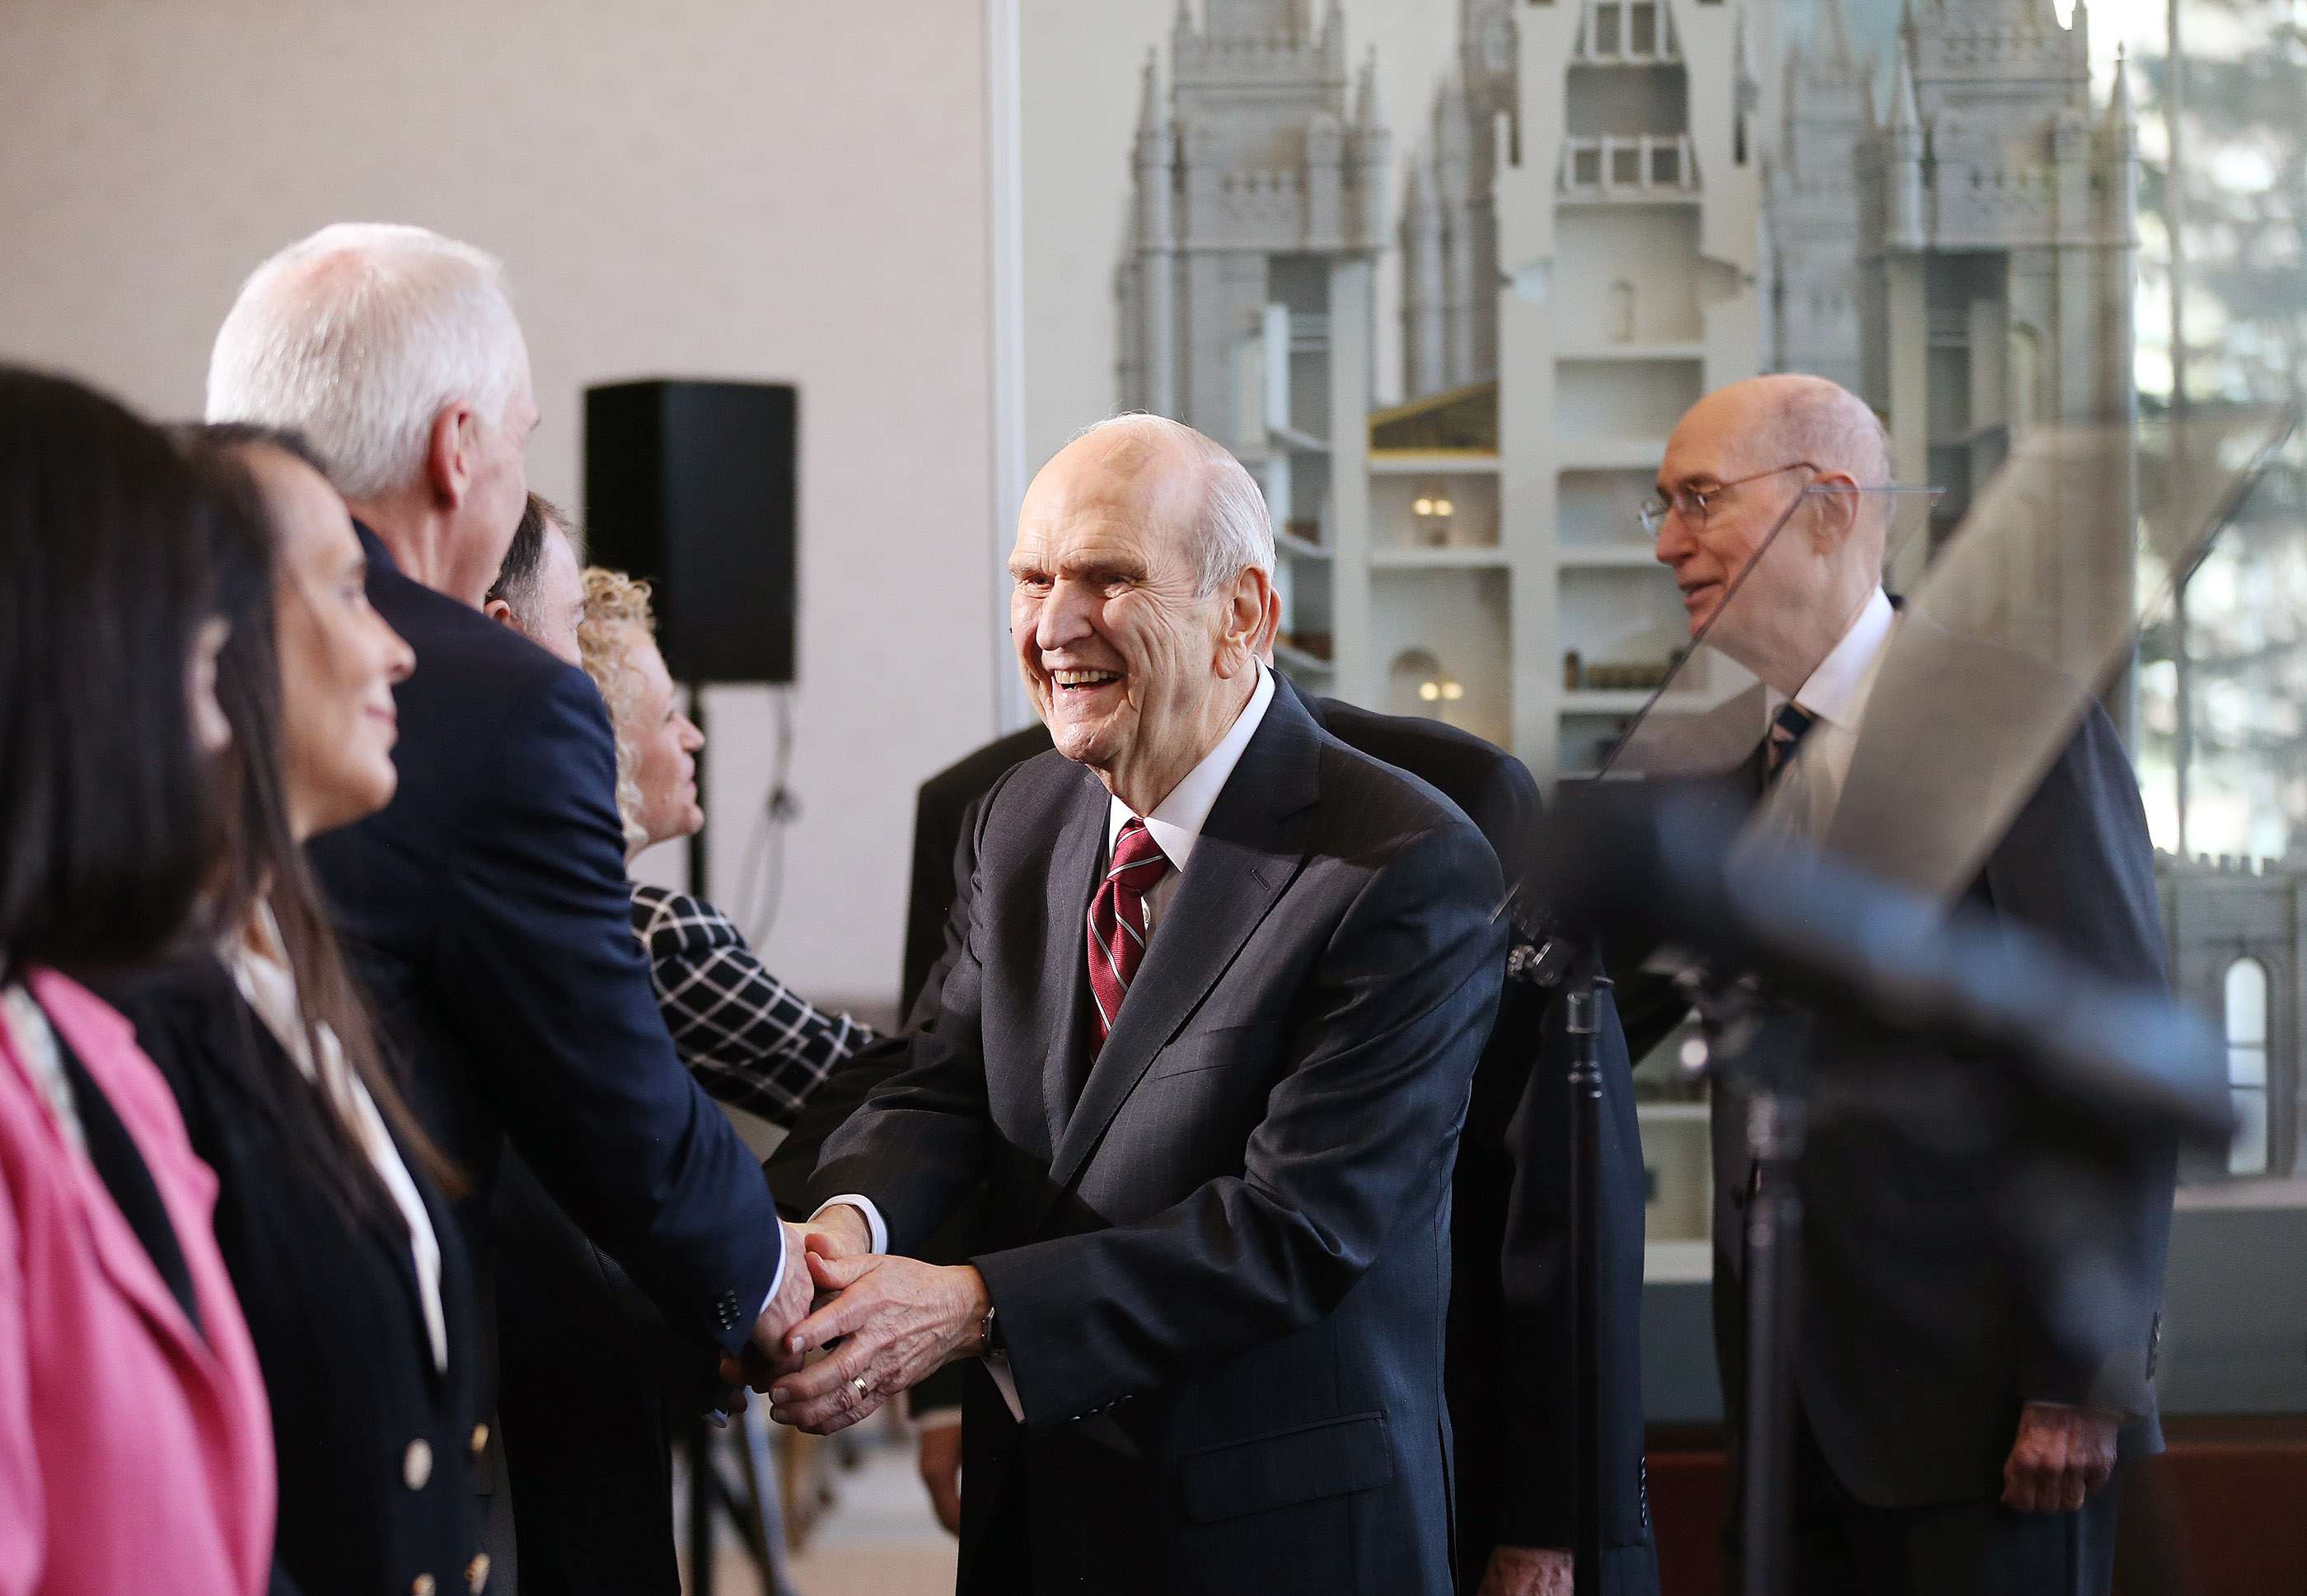 President Russell M. Nelson of The Church of Jesus Christ of Latter-day Saints shakes hands with dignitaries prior to speaking during a press conference in Salt Lake City on Friday, April 19, 2019 about renovation plans for the Salt Lake Temple and historic Temple Square.